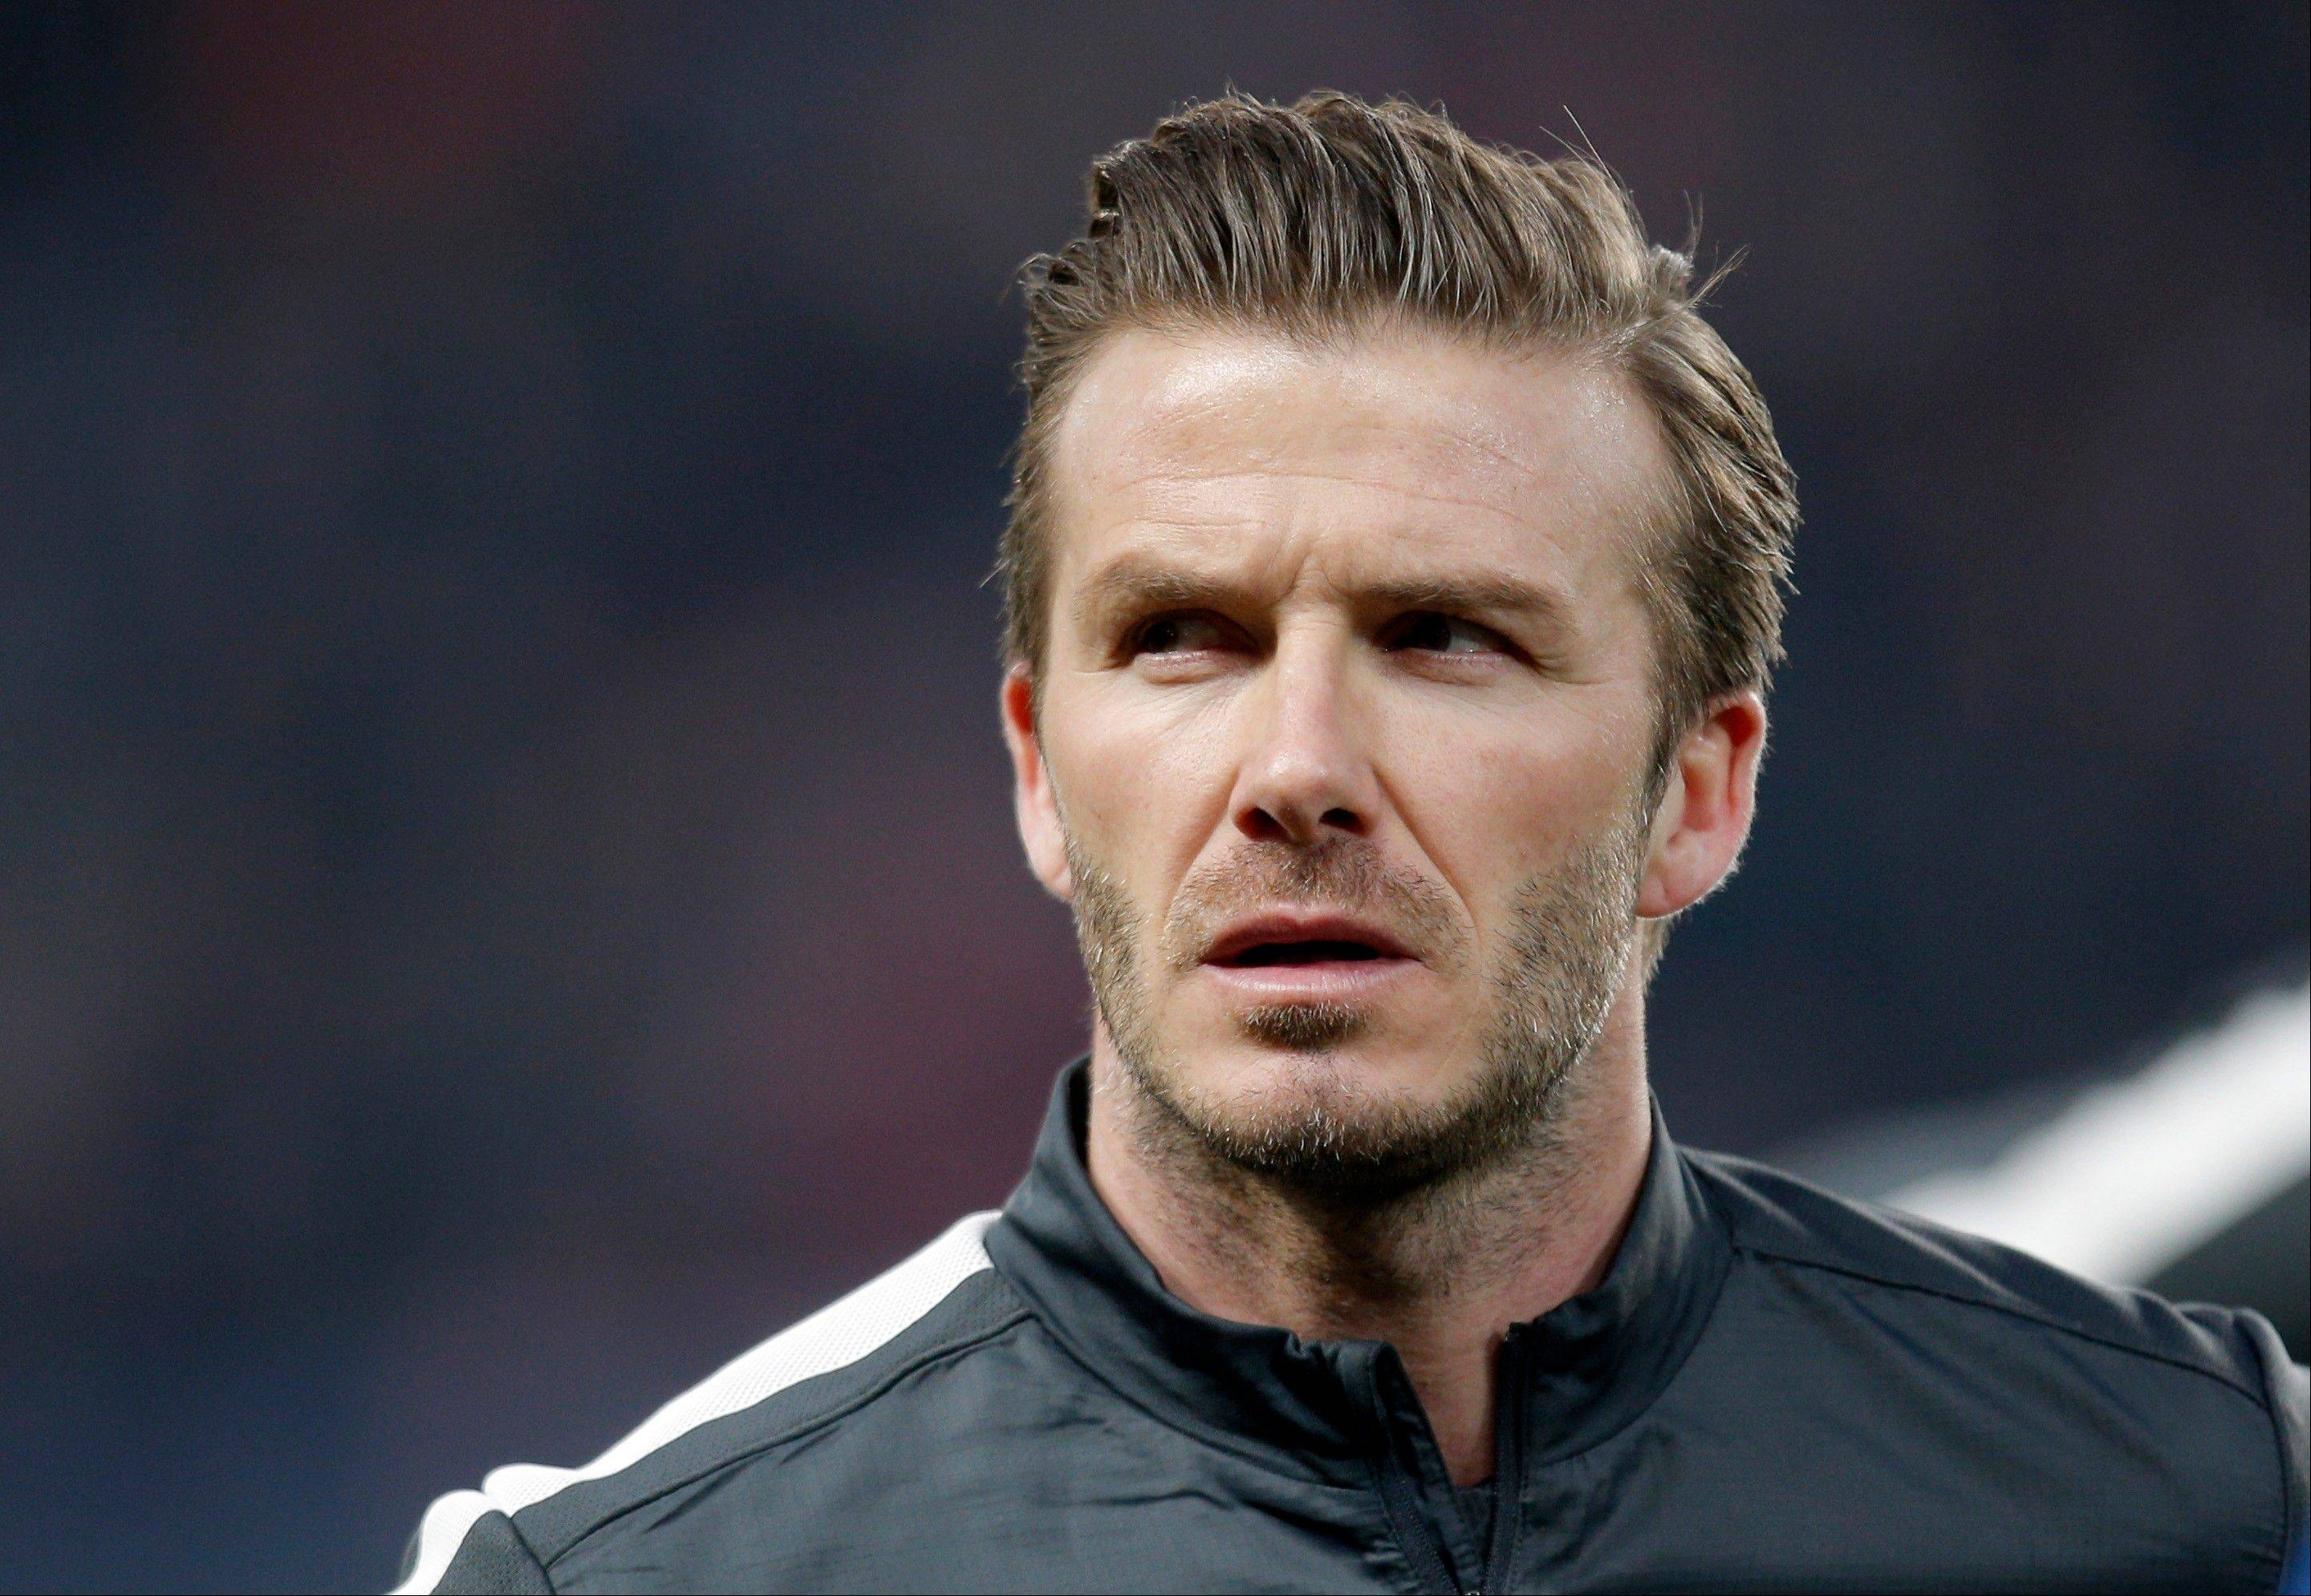 Paris Saint Germain's David Beckham arrives for his Champions League quarterfinal soccer match against Barcelona in Paris. Beckham is retiring from soccer after the season. The 38-year-old Englishman recently won a league title in a fourth country with Paris Saint-Germain.